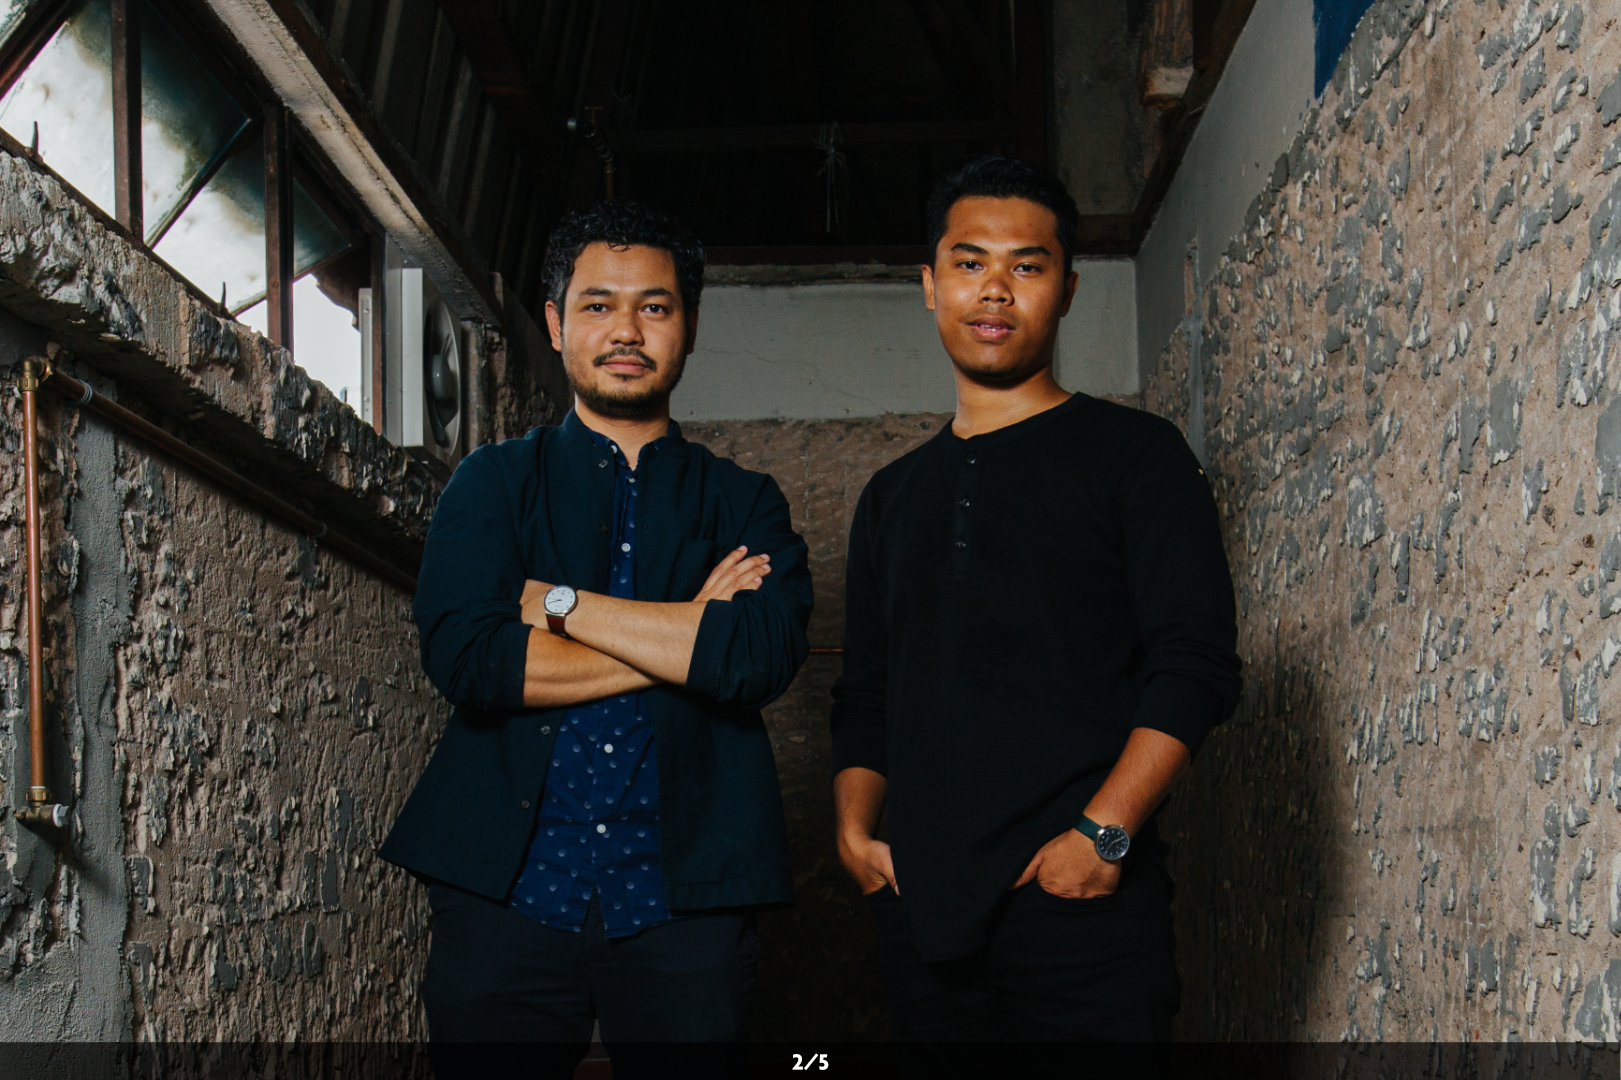 Both Fariz and Shakir try to balance art, technology and the most important element in an installation, the people.